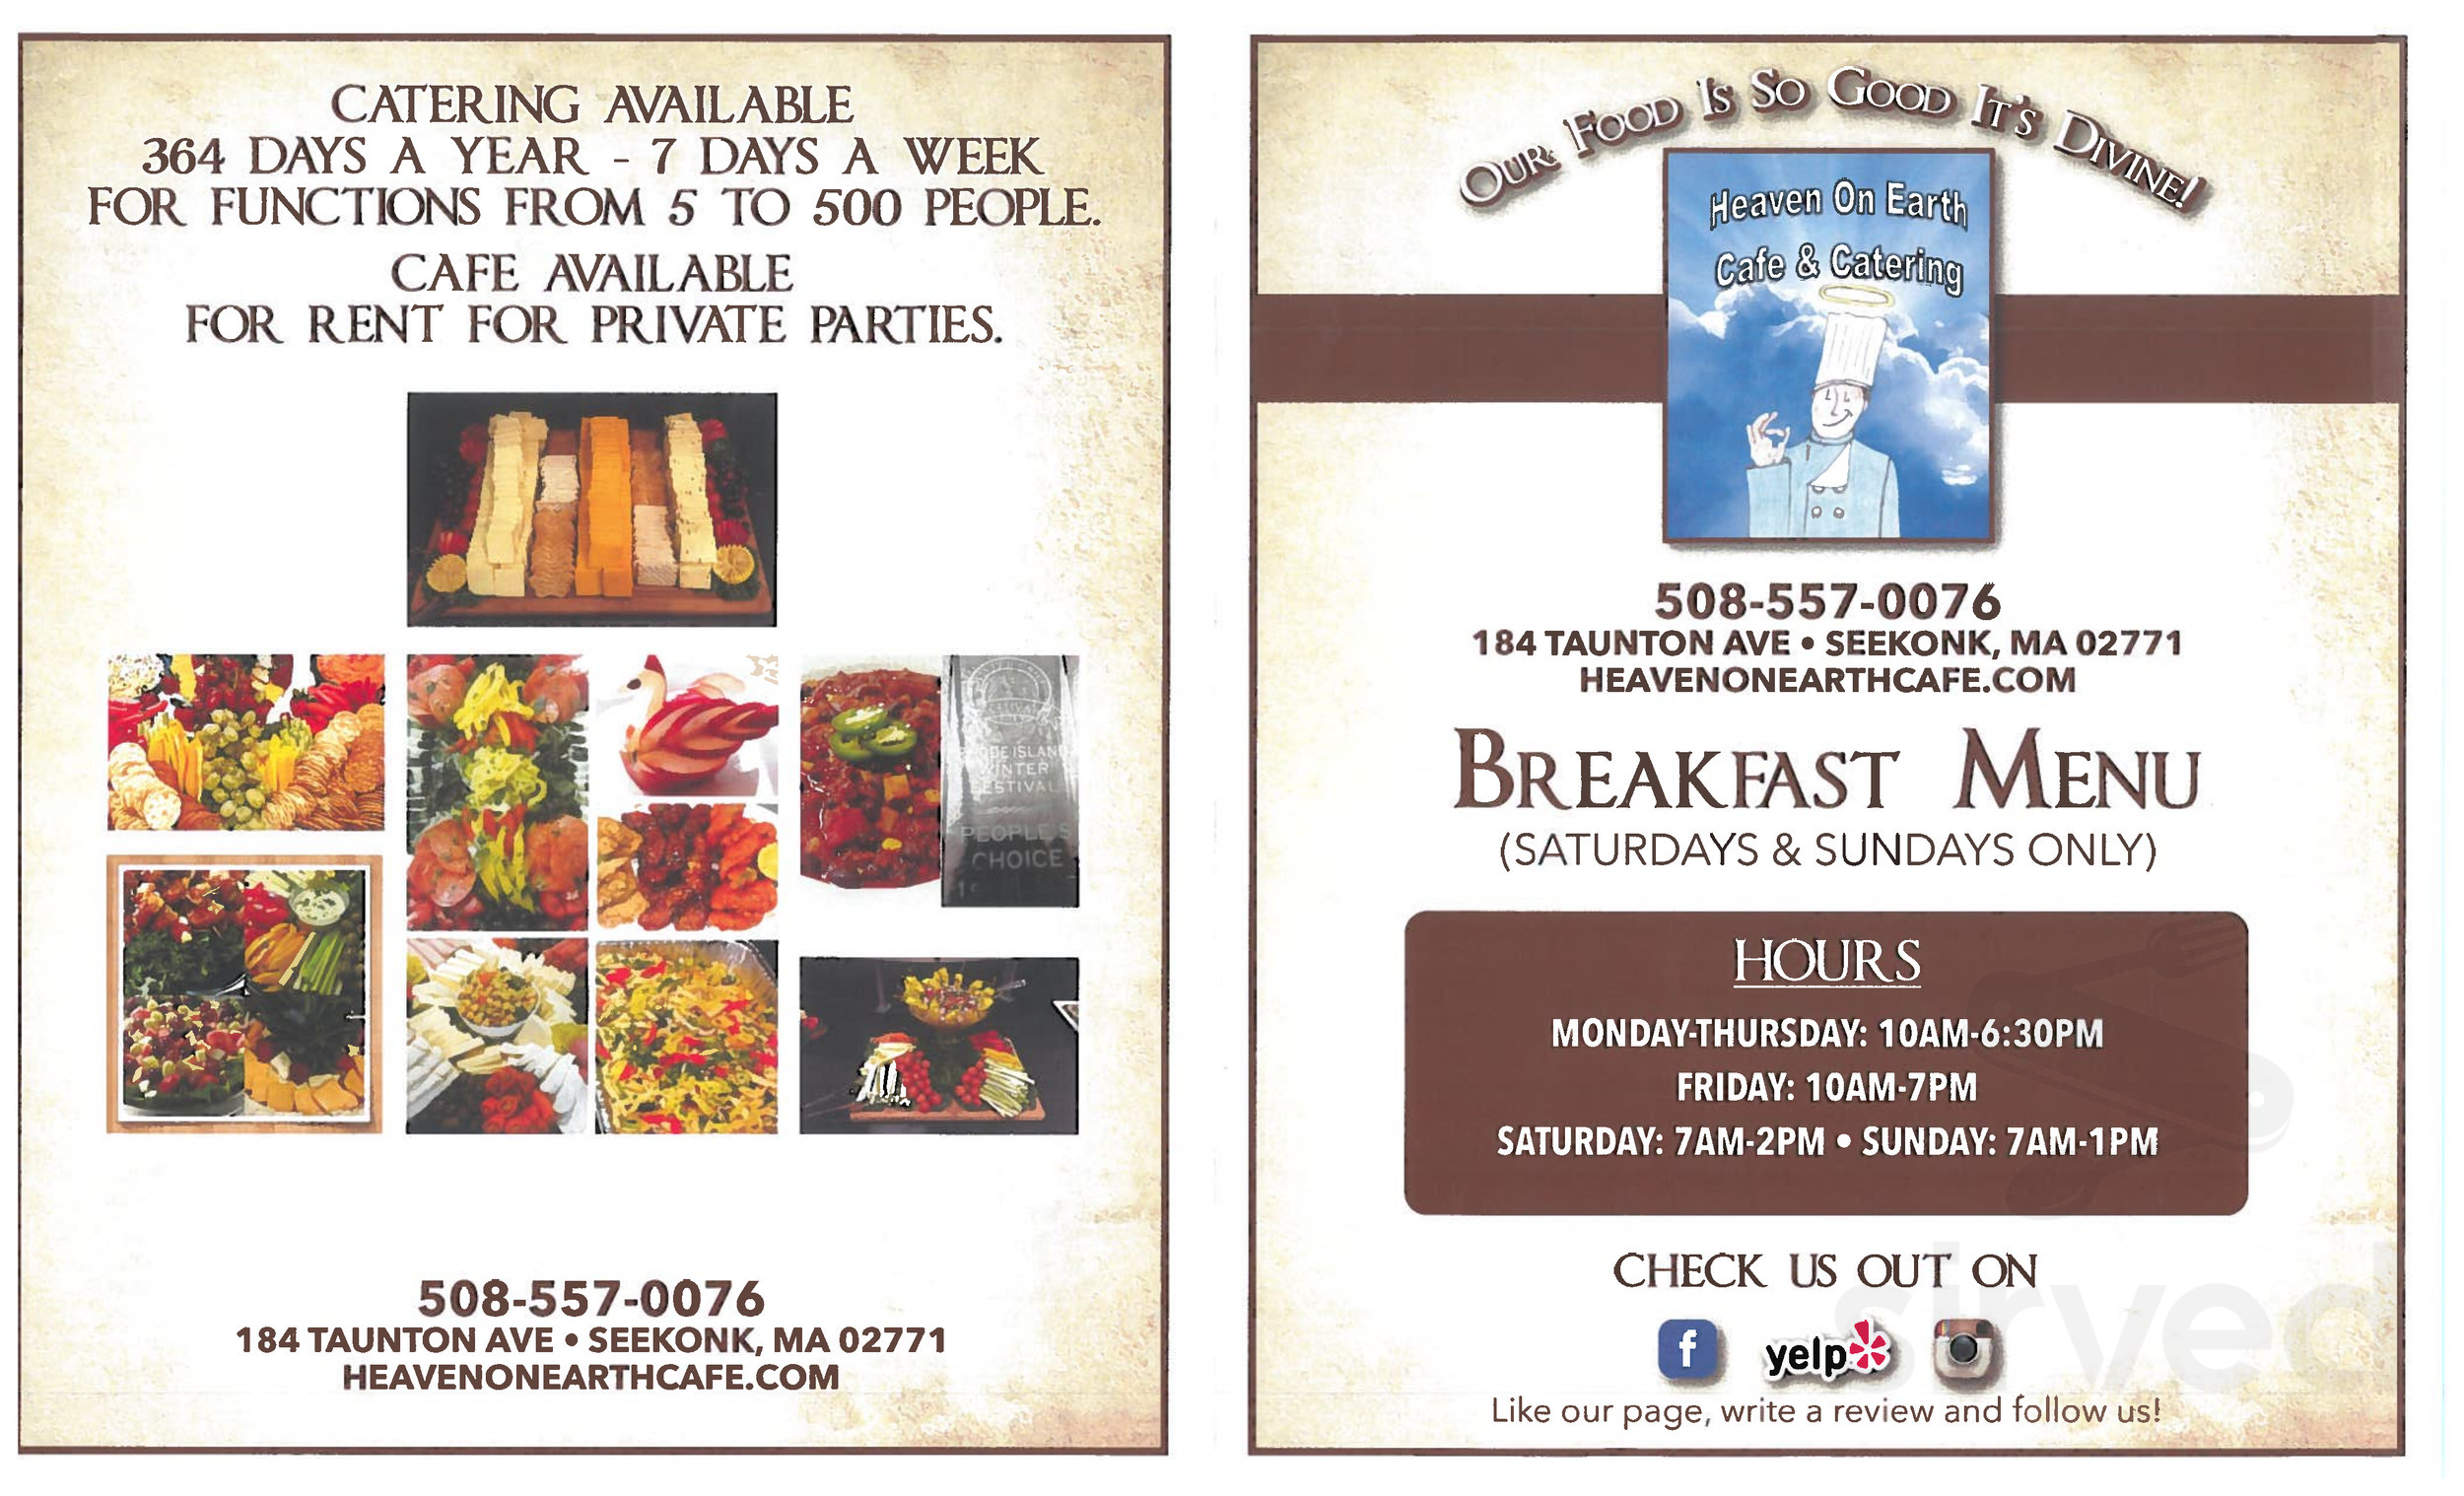 Menu for Heaven on Earth Cafe and Catering in Seekonk